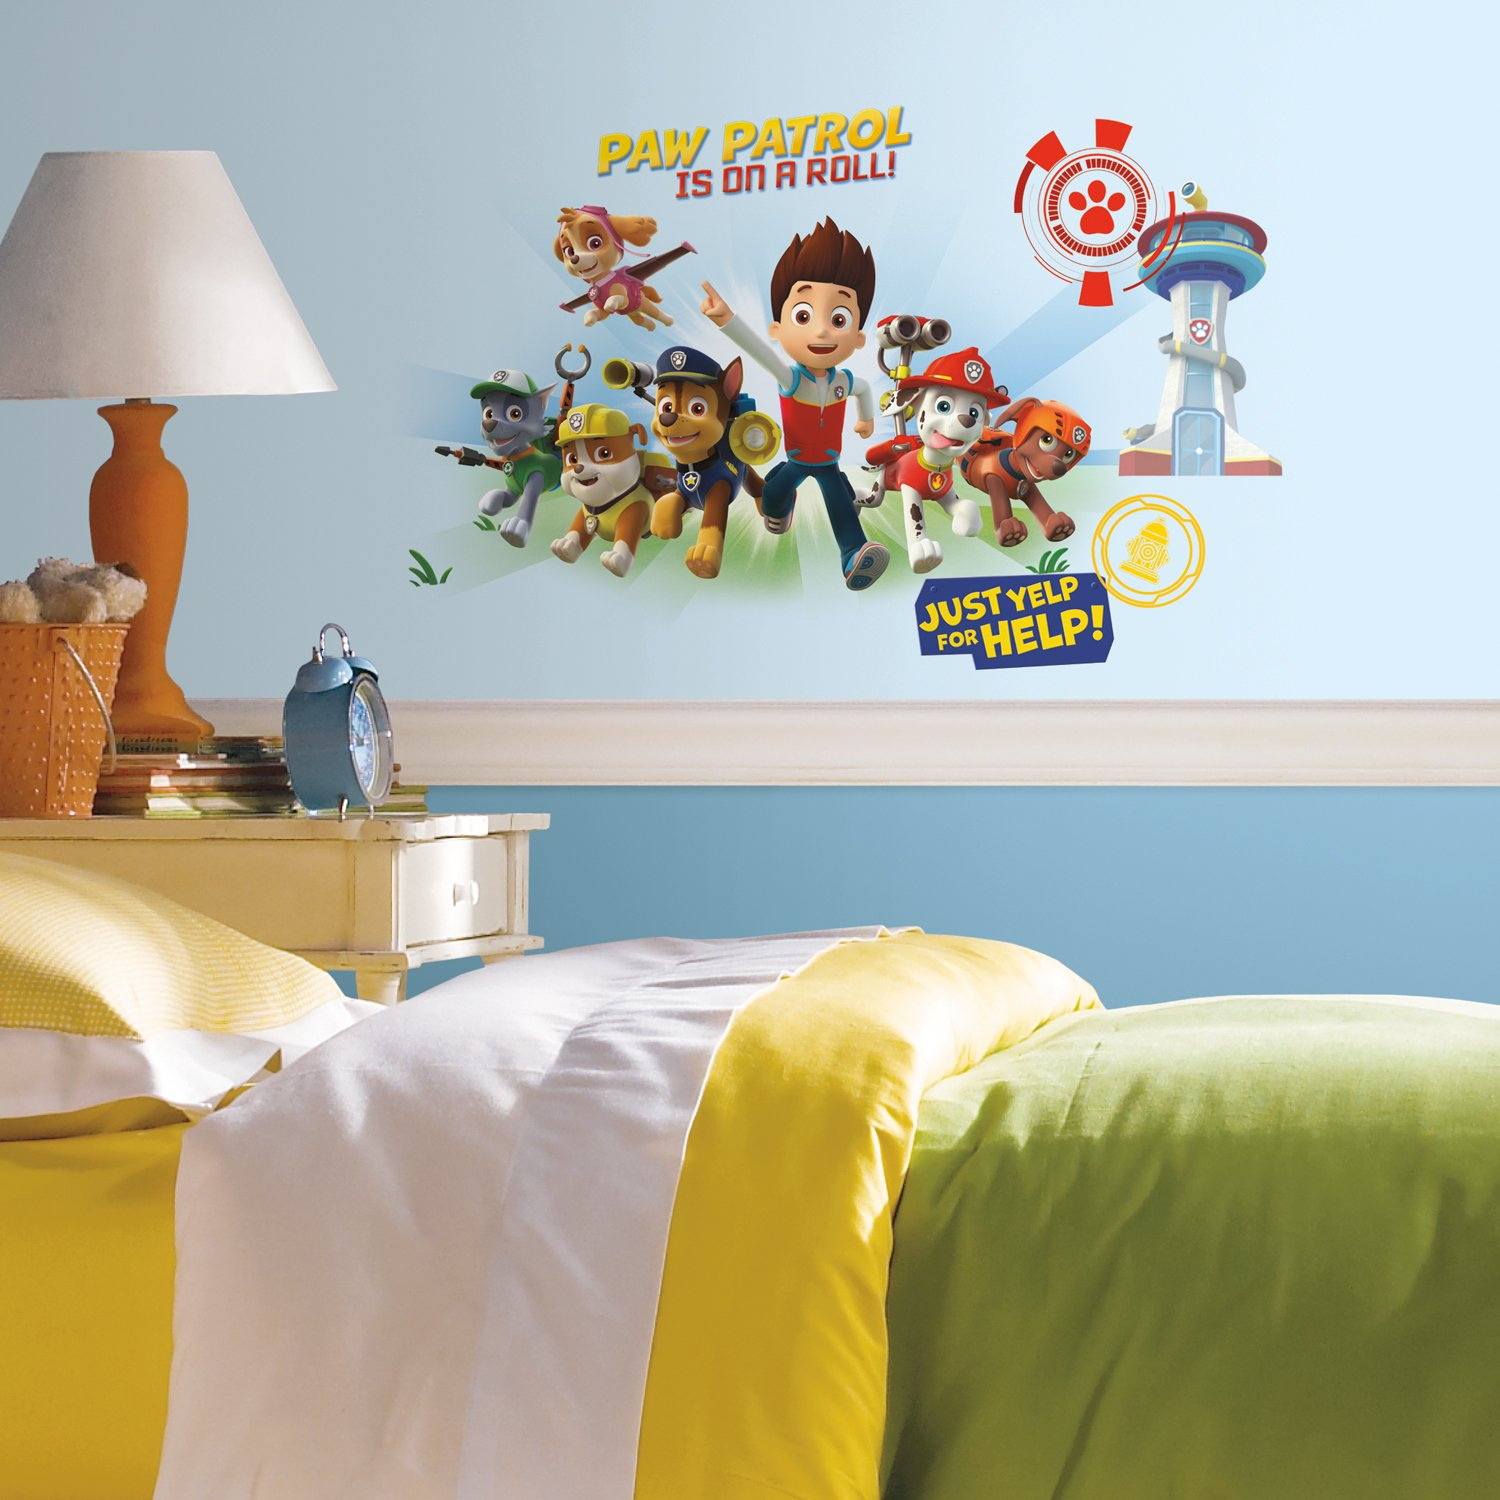 Vinilo Decorativo Pared [0np27ofy] Paw Patrol